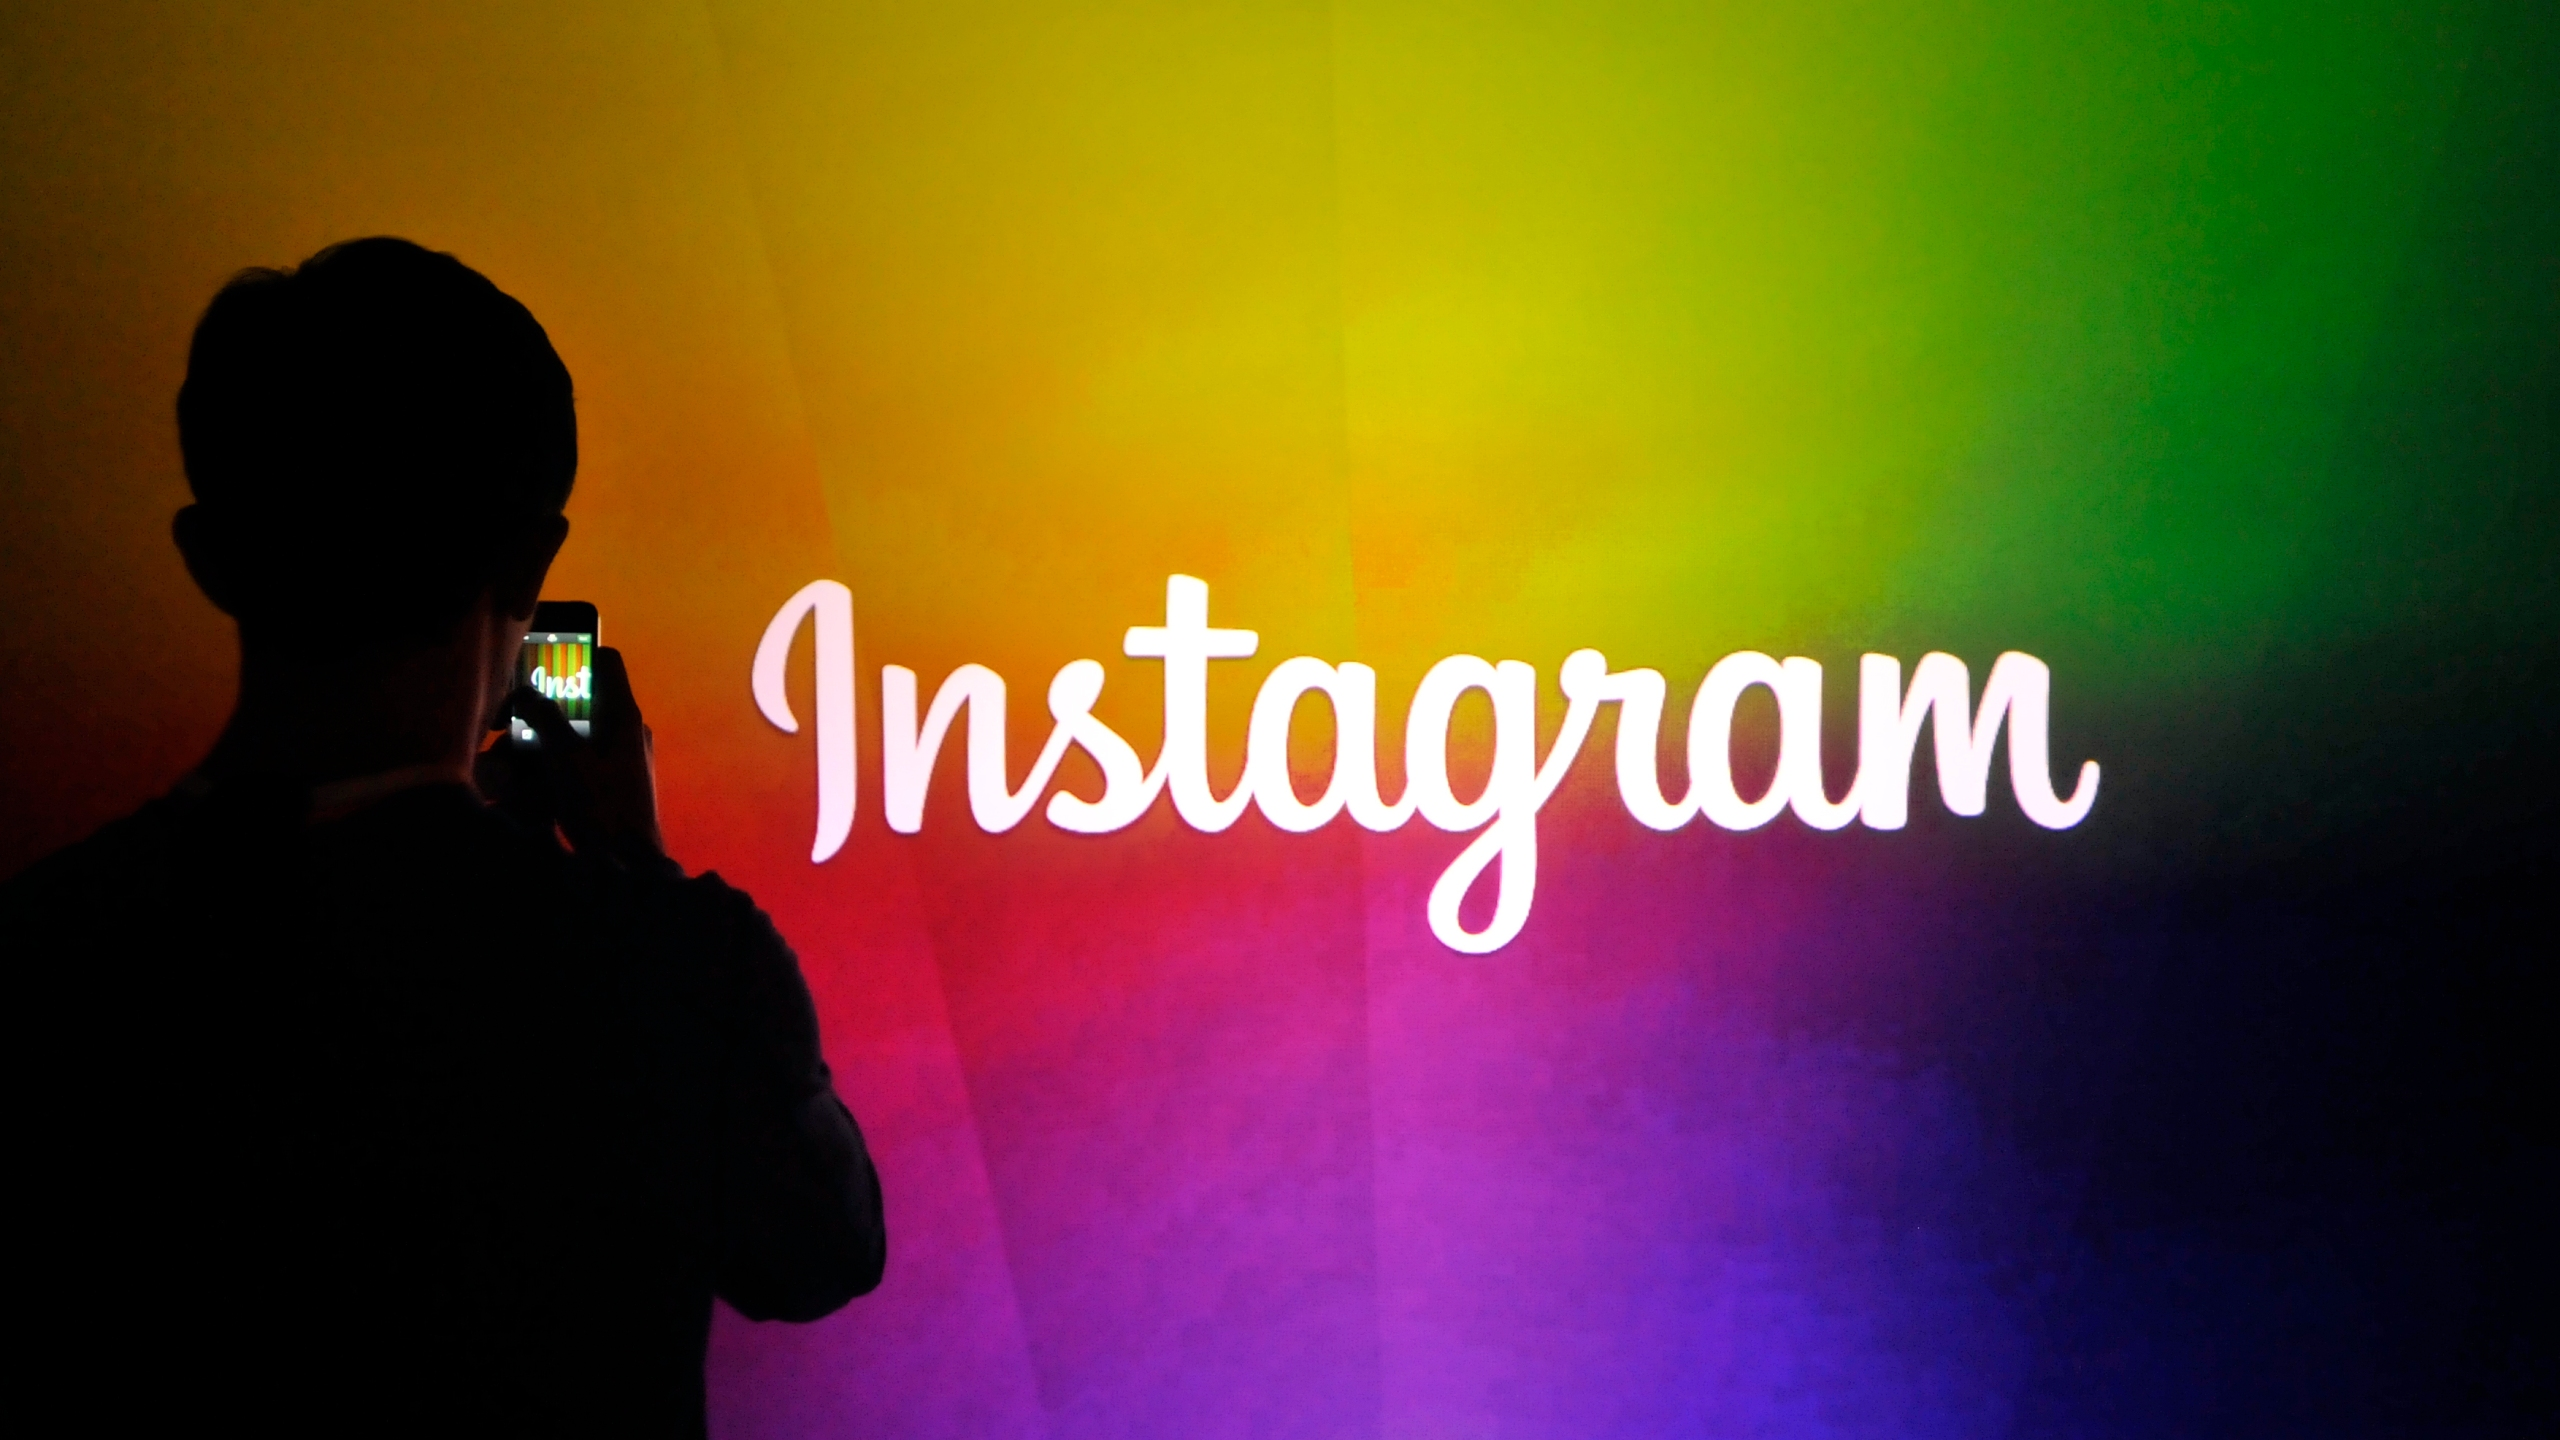 Picture of silhouette in front of Instagram sign